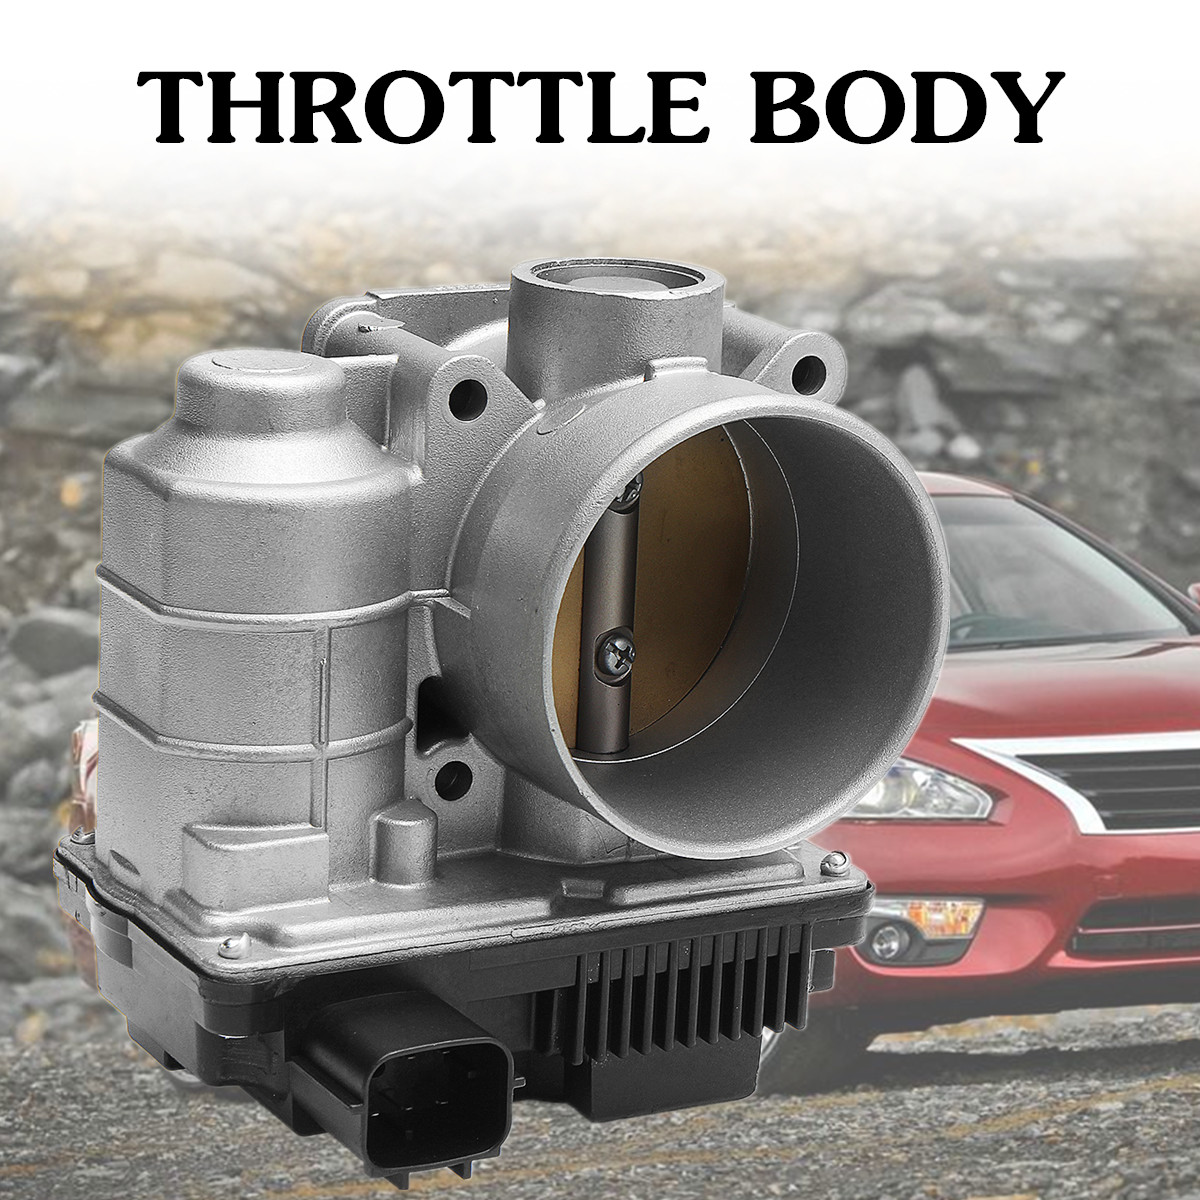 Throttle Valve Body with Sensors 16119-AE013 Fits for Nissan Sentra Altima 2.5L Grey 12x9x13cm Meets/Exceeds O.E.M Performance 60mm fuel injection throttle body for 2002 2006 nissan altima sentra 2 5l qr25de